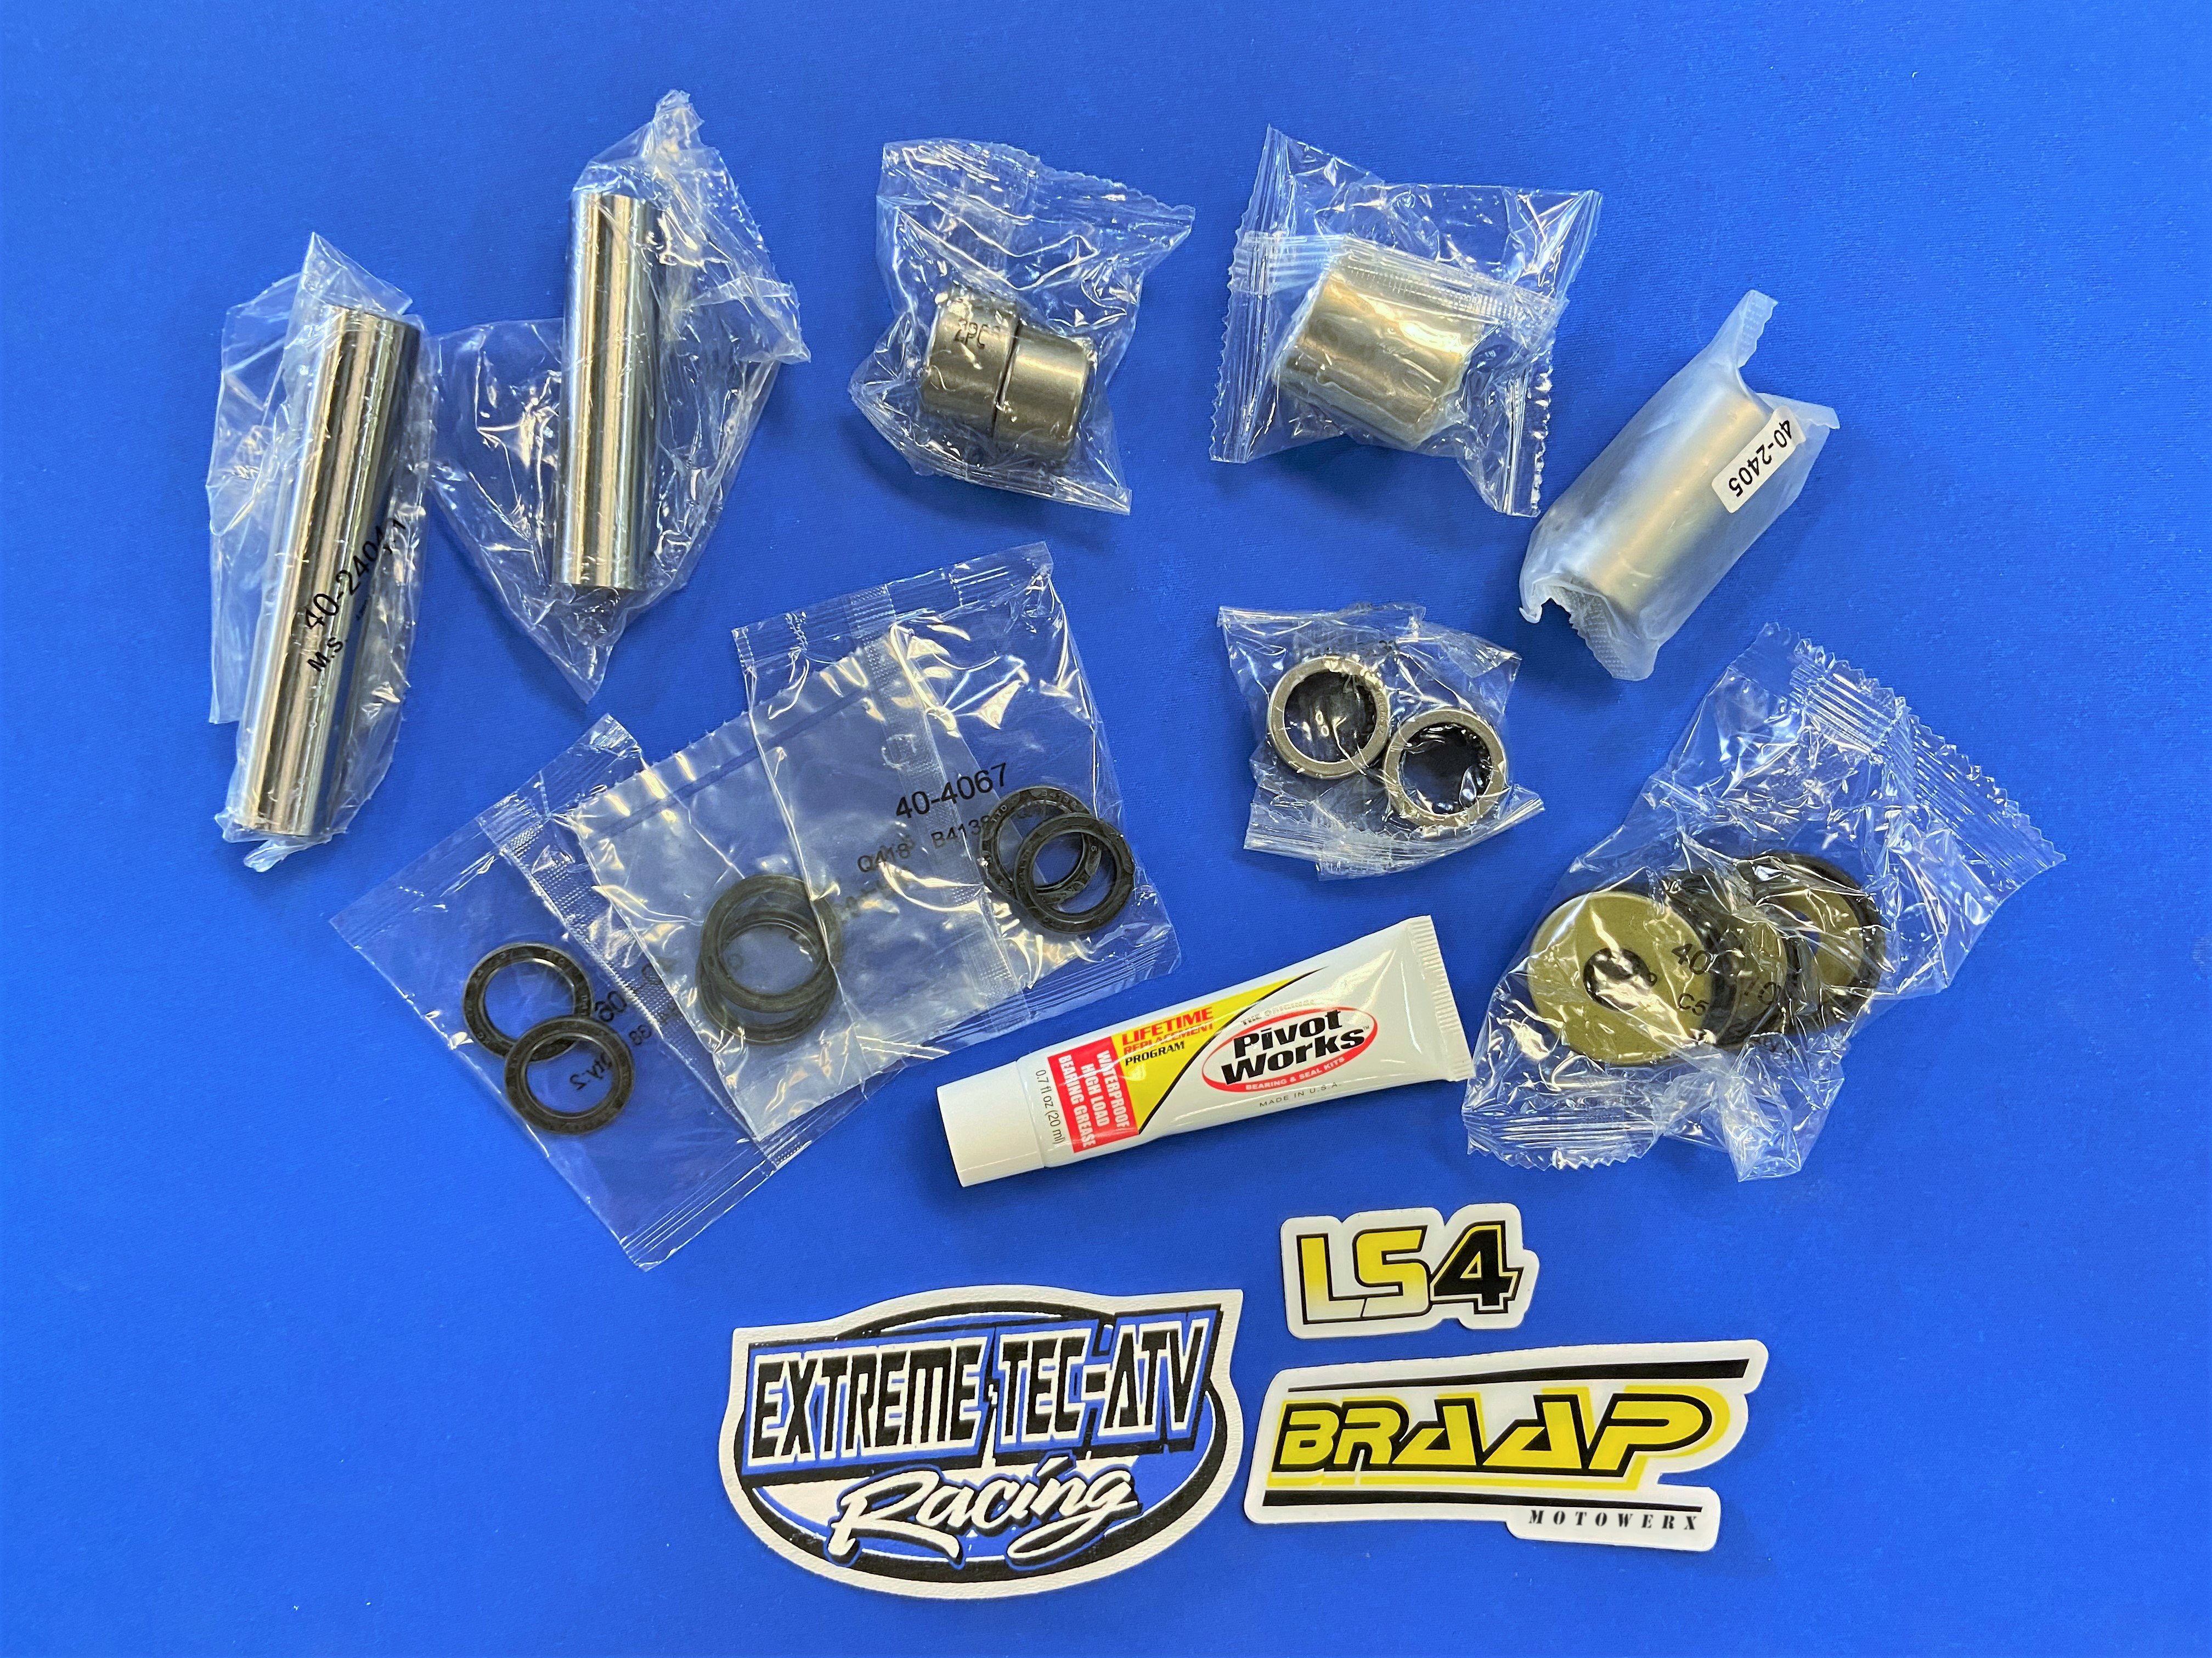 YFZ450R/X Linkage Rebuild Kit